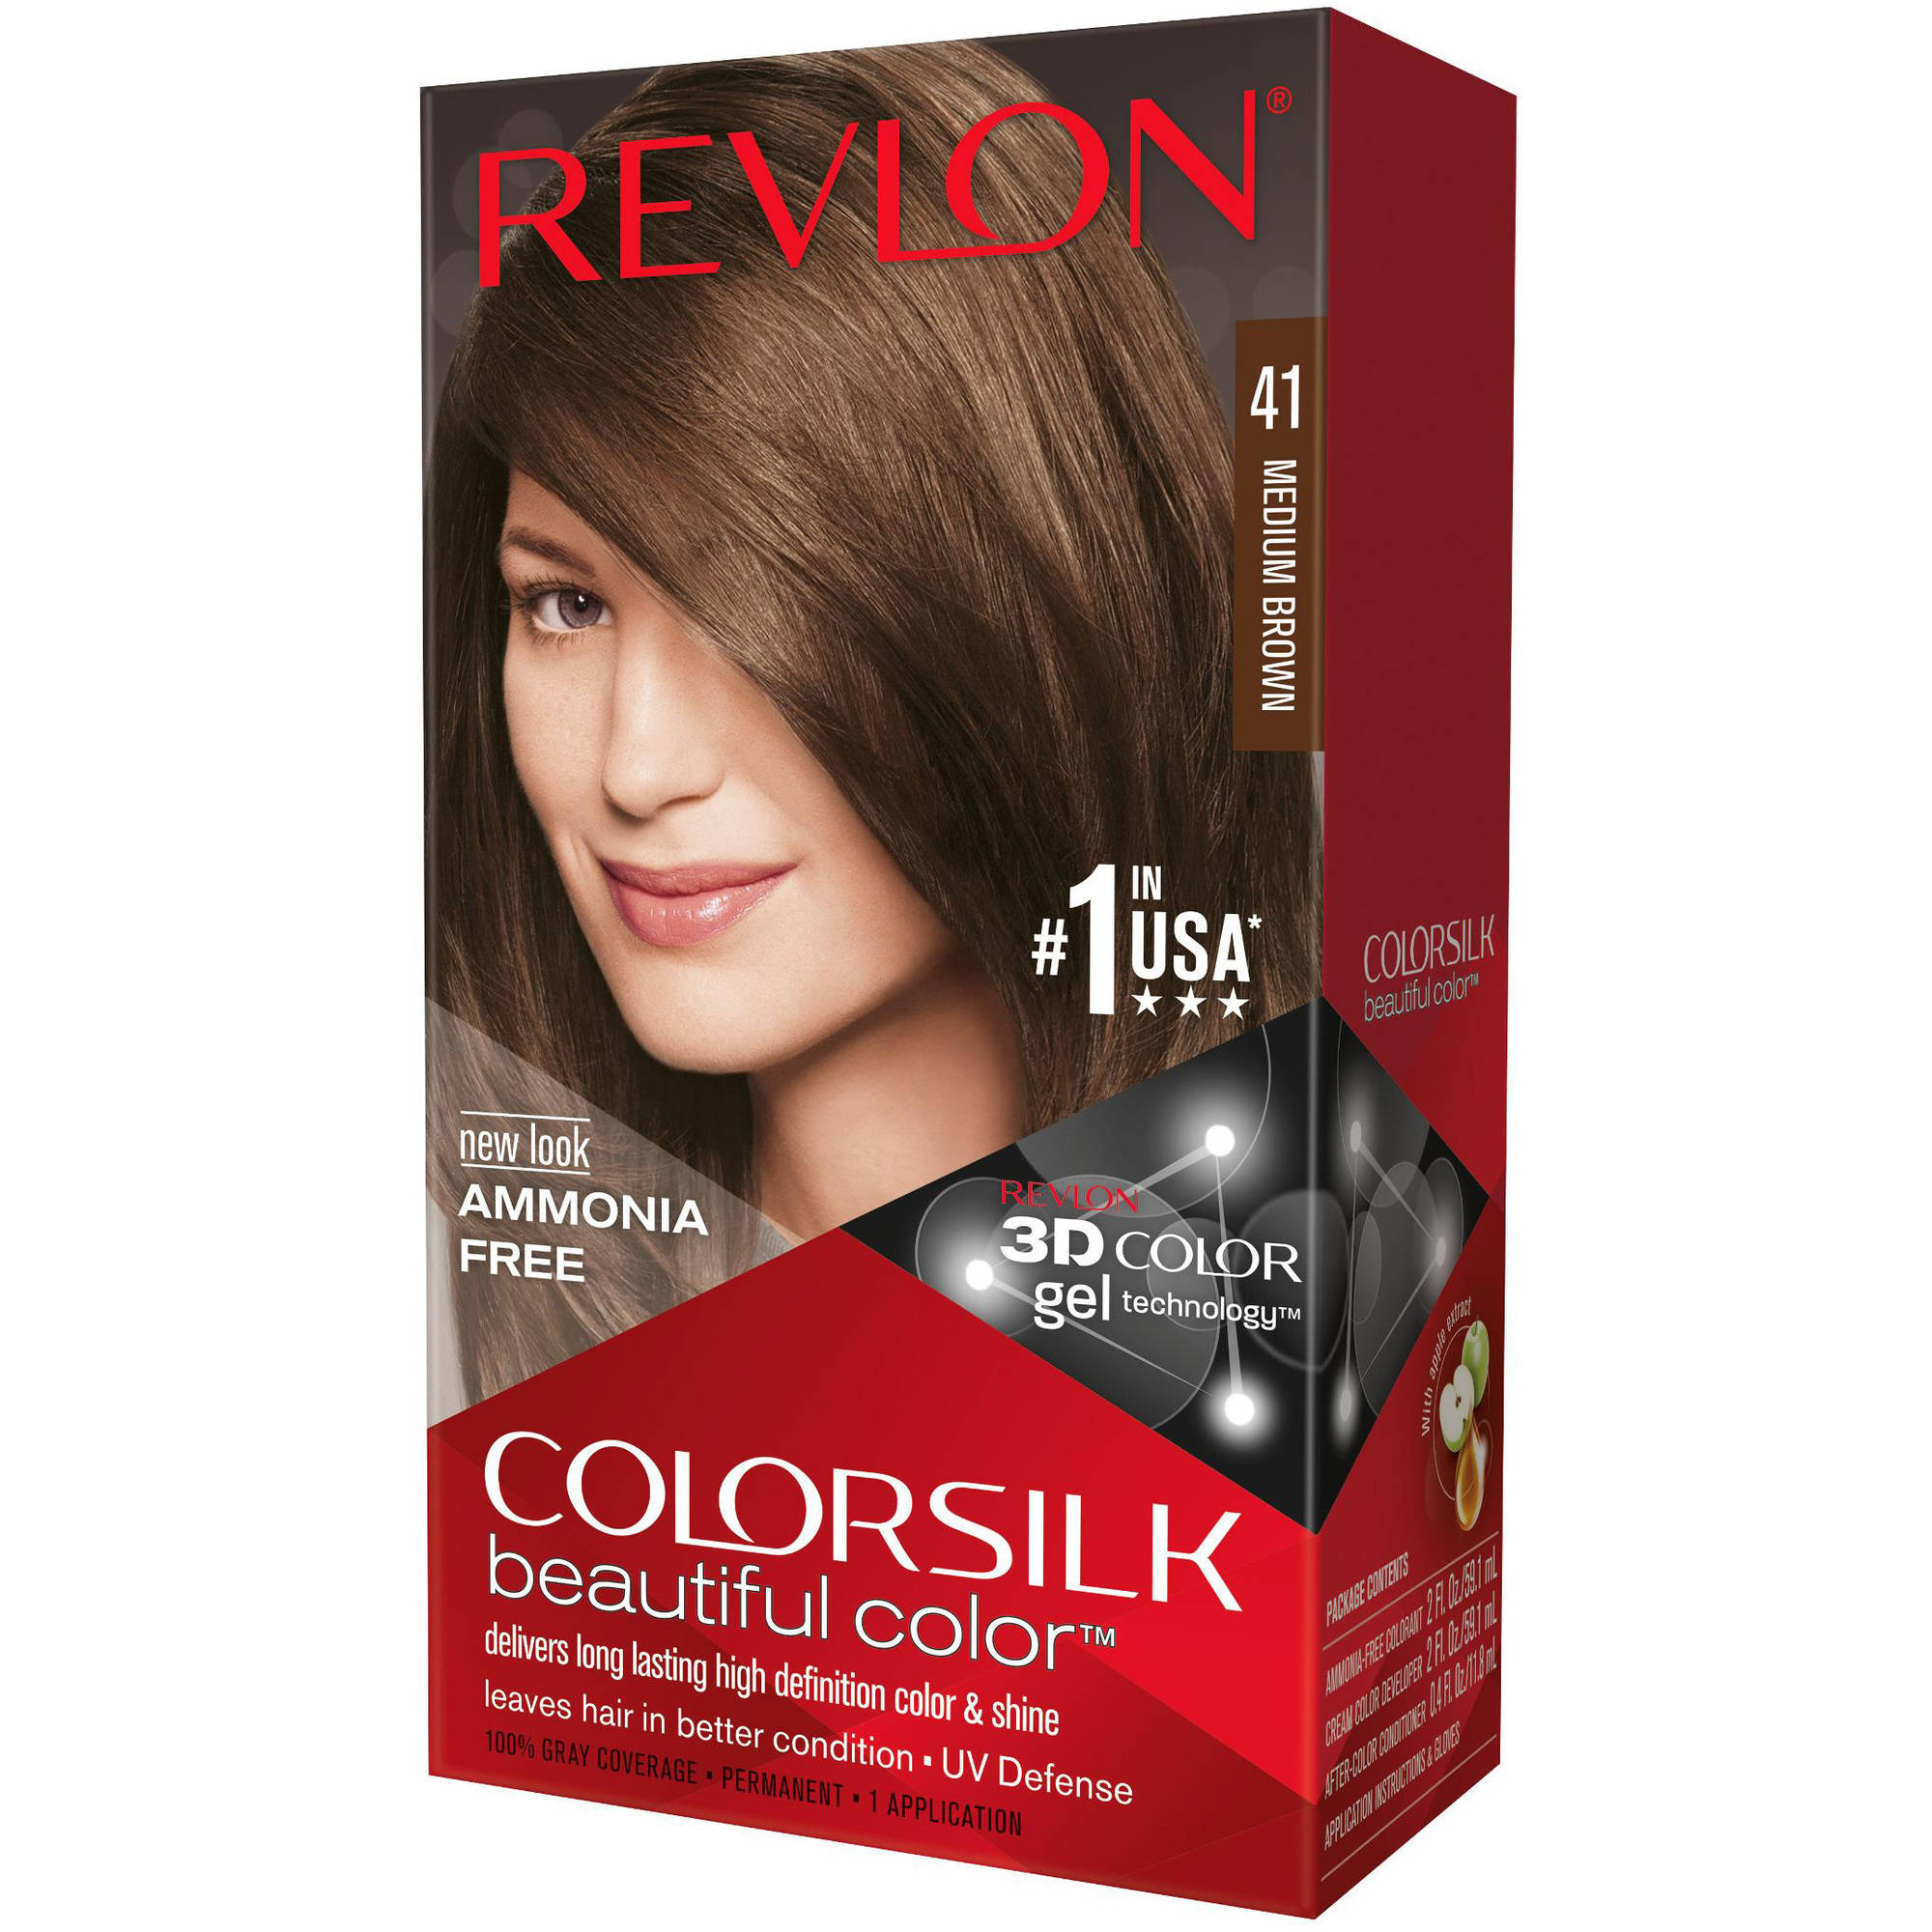 Revlon Colorsilk Beautiful Color Permanent Hair Color, 41 Medium Brown